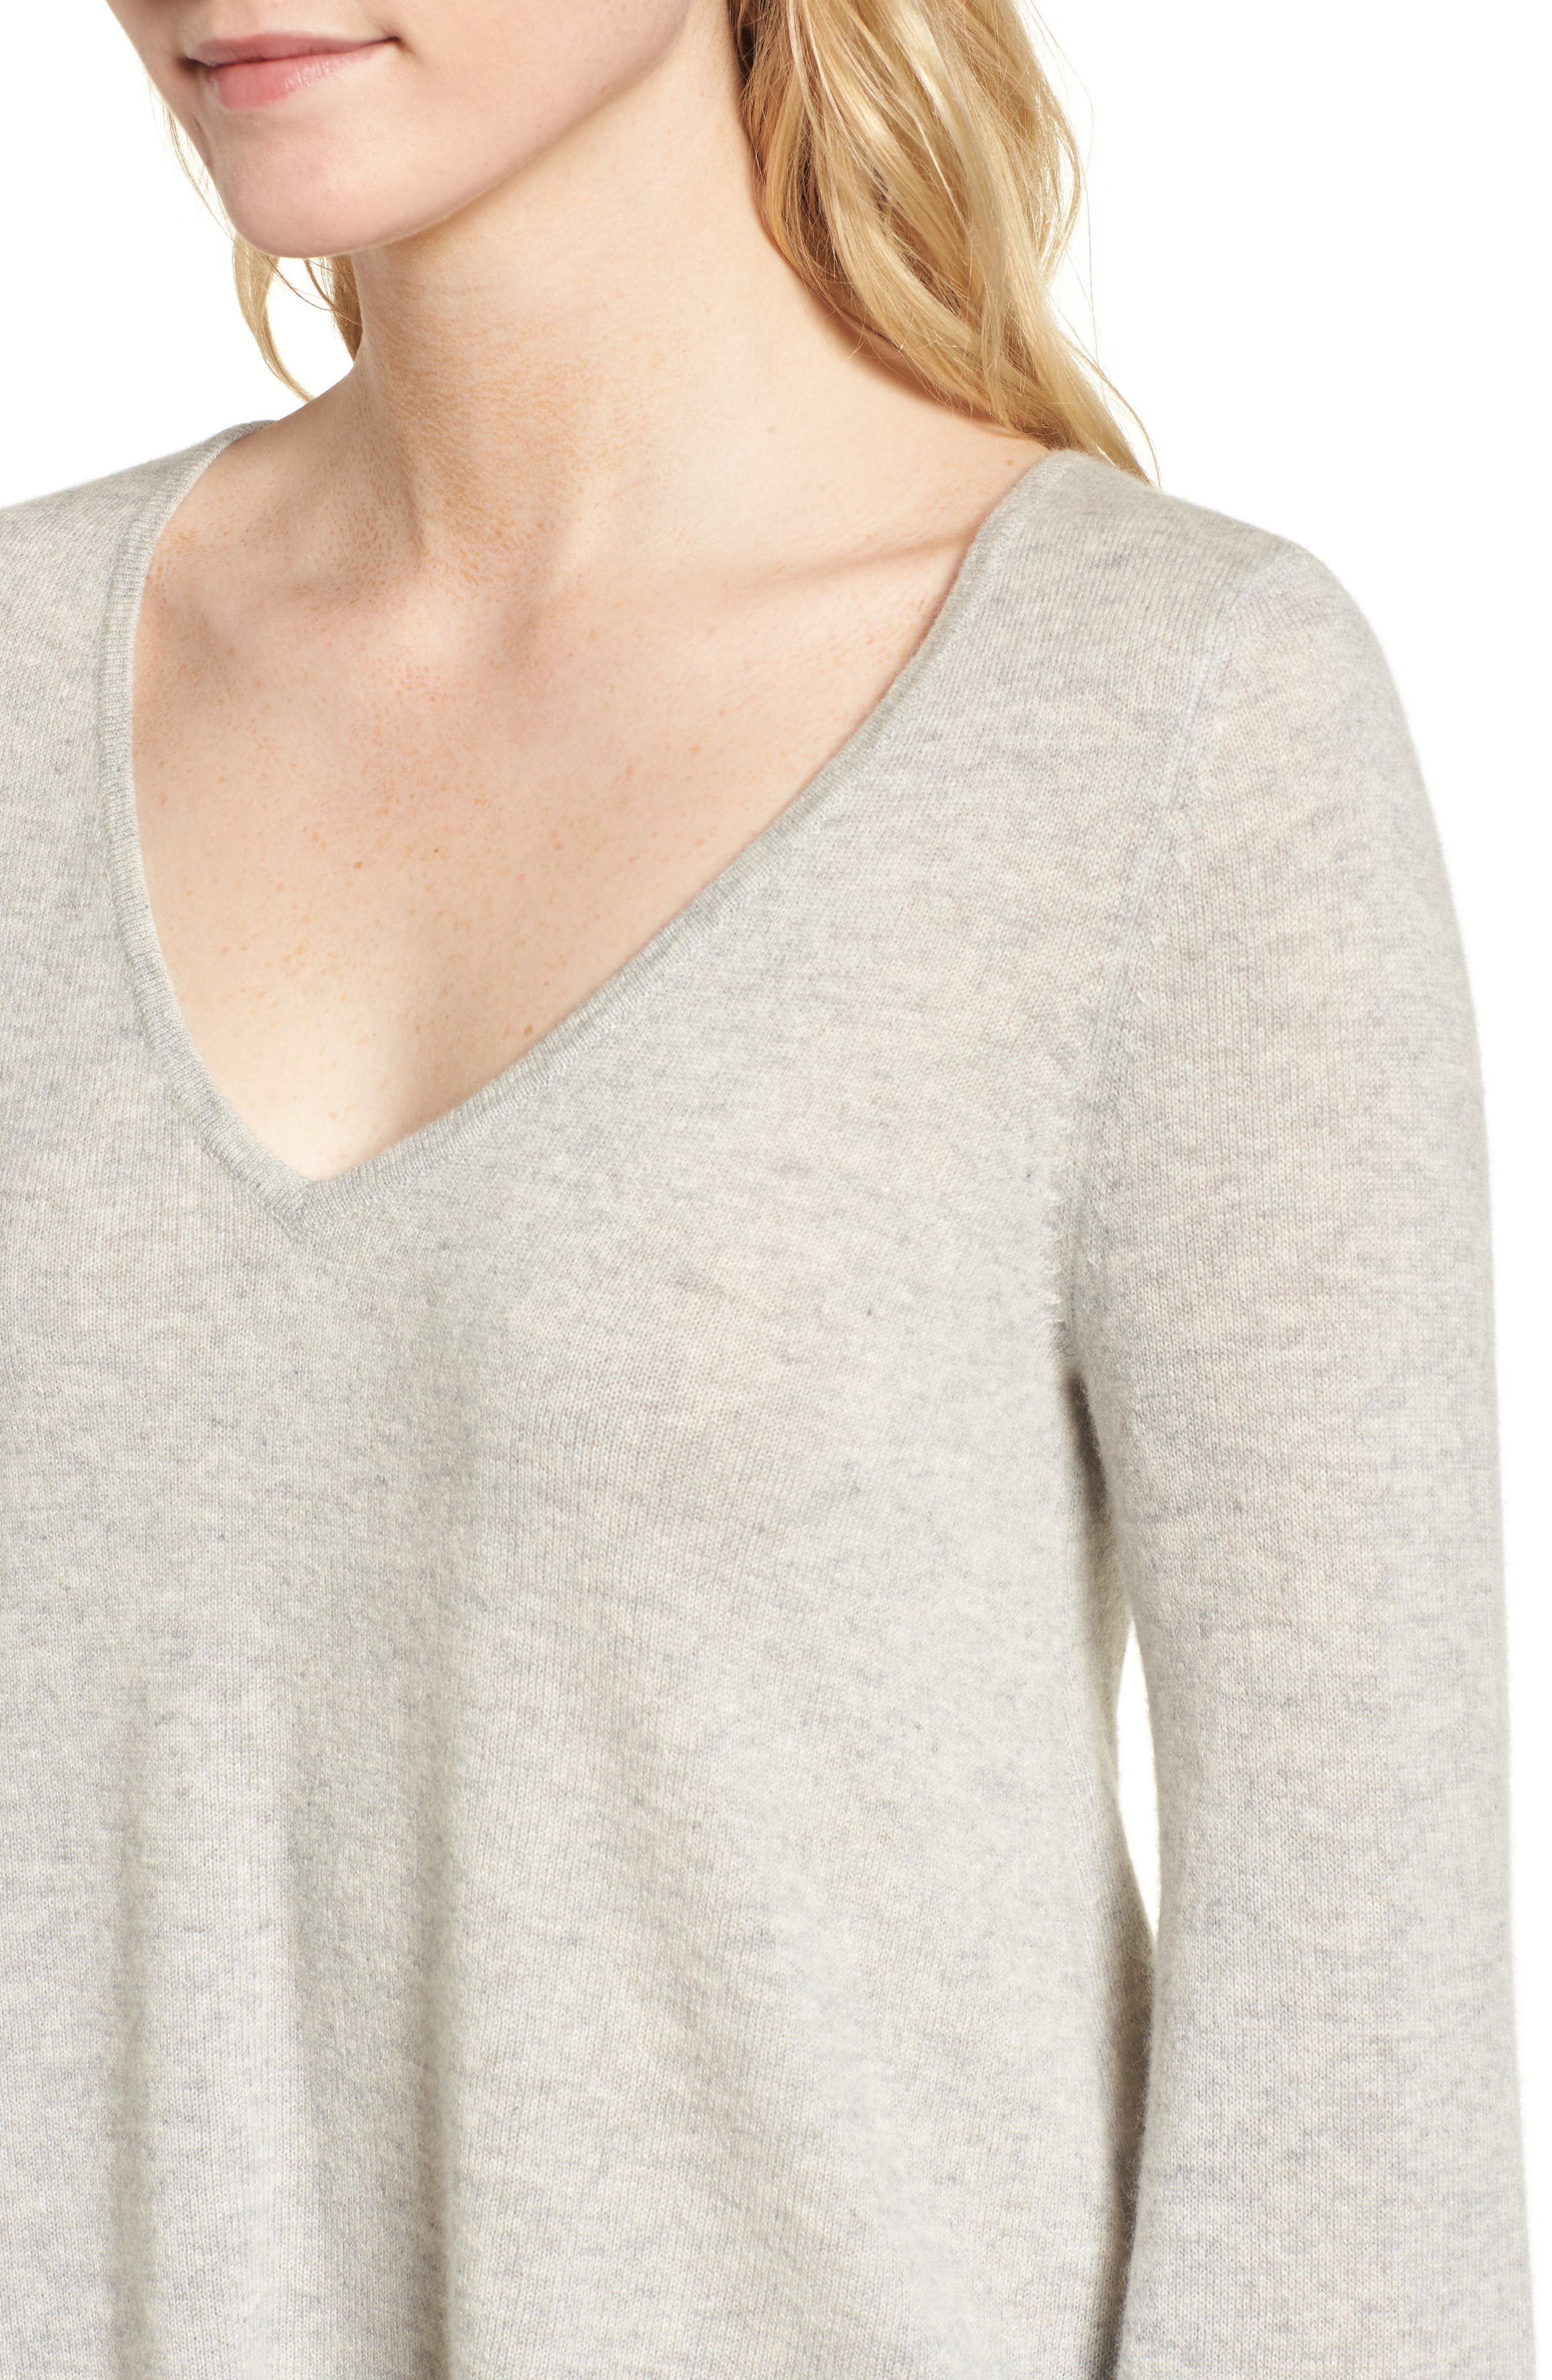 Marylee Cashmere Top,                             Alternate thumbnail 4, color,                             Light Heather Grey